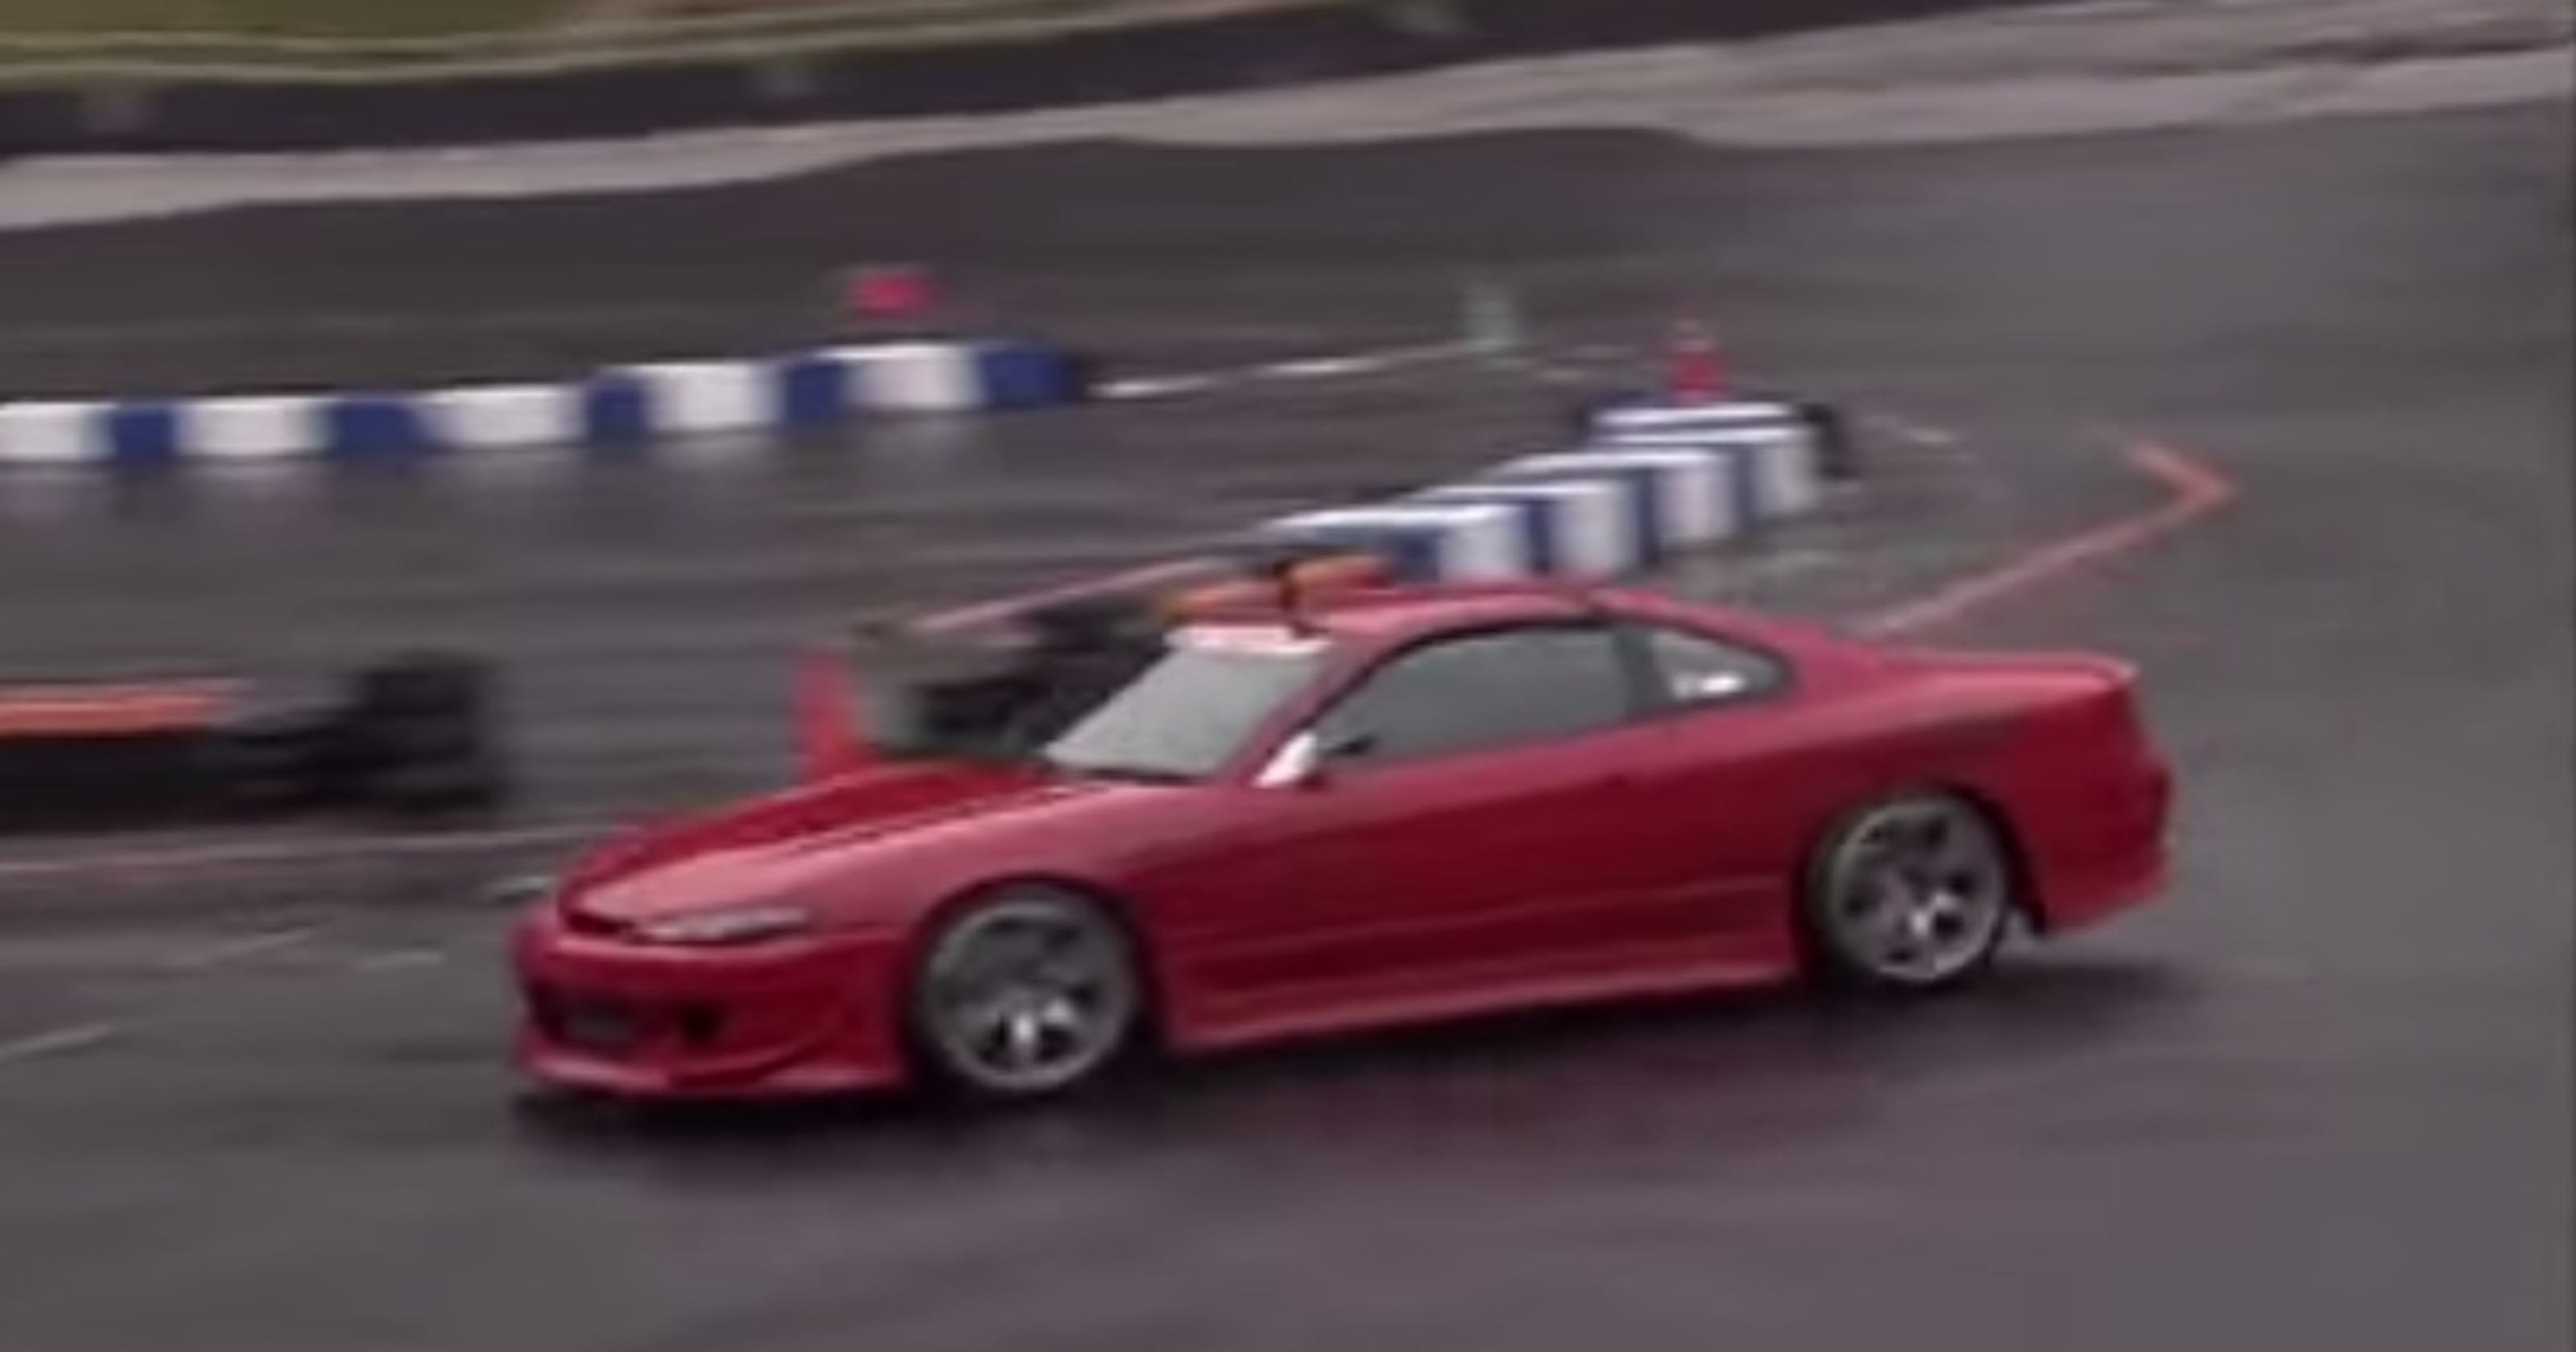 Nissan Silvia Fast Furious And Illegal In The United States 1998 240sx For Sale